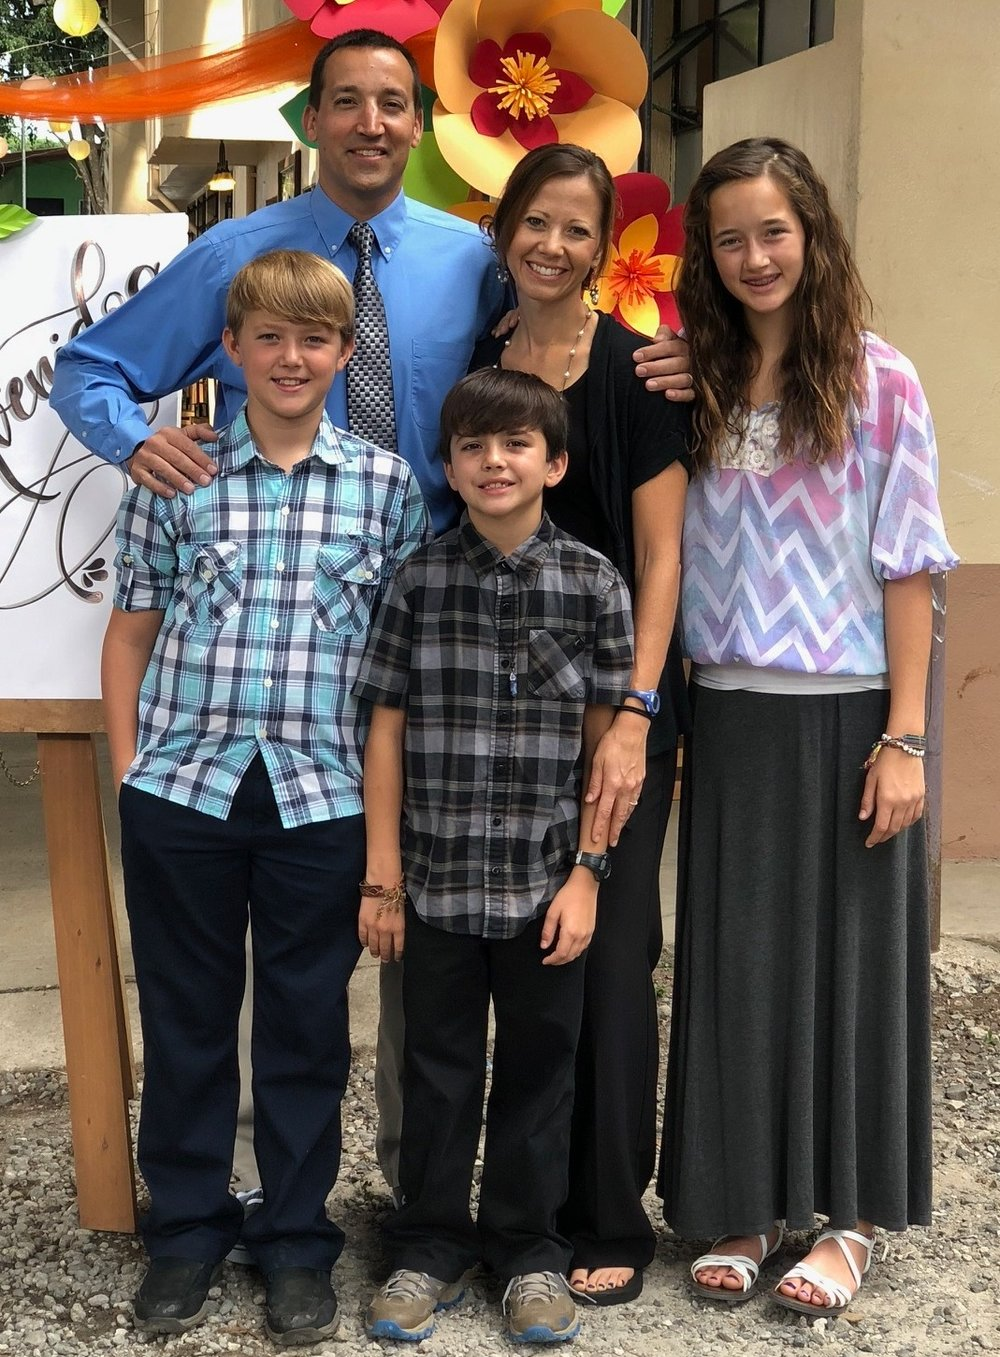 The Armstrong Family - From left to right: Kevin, Ellie, Holly, Sammy and Ben